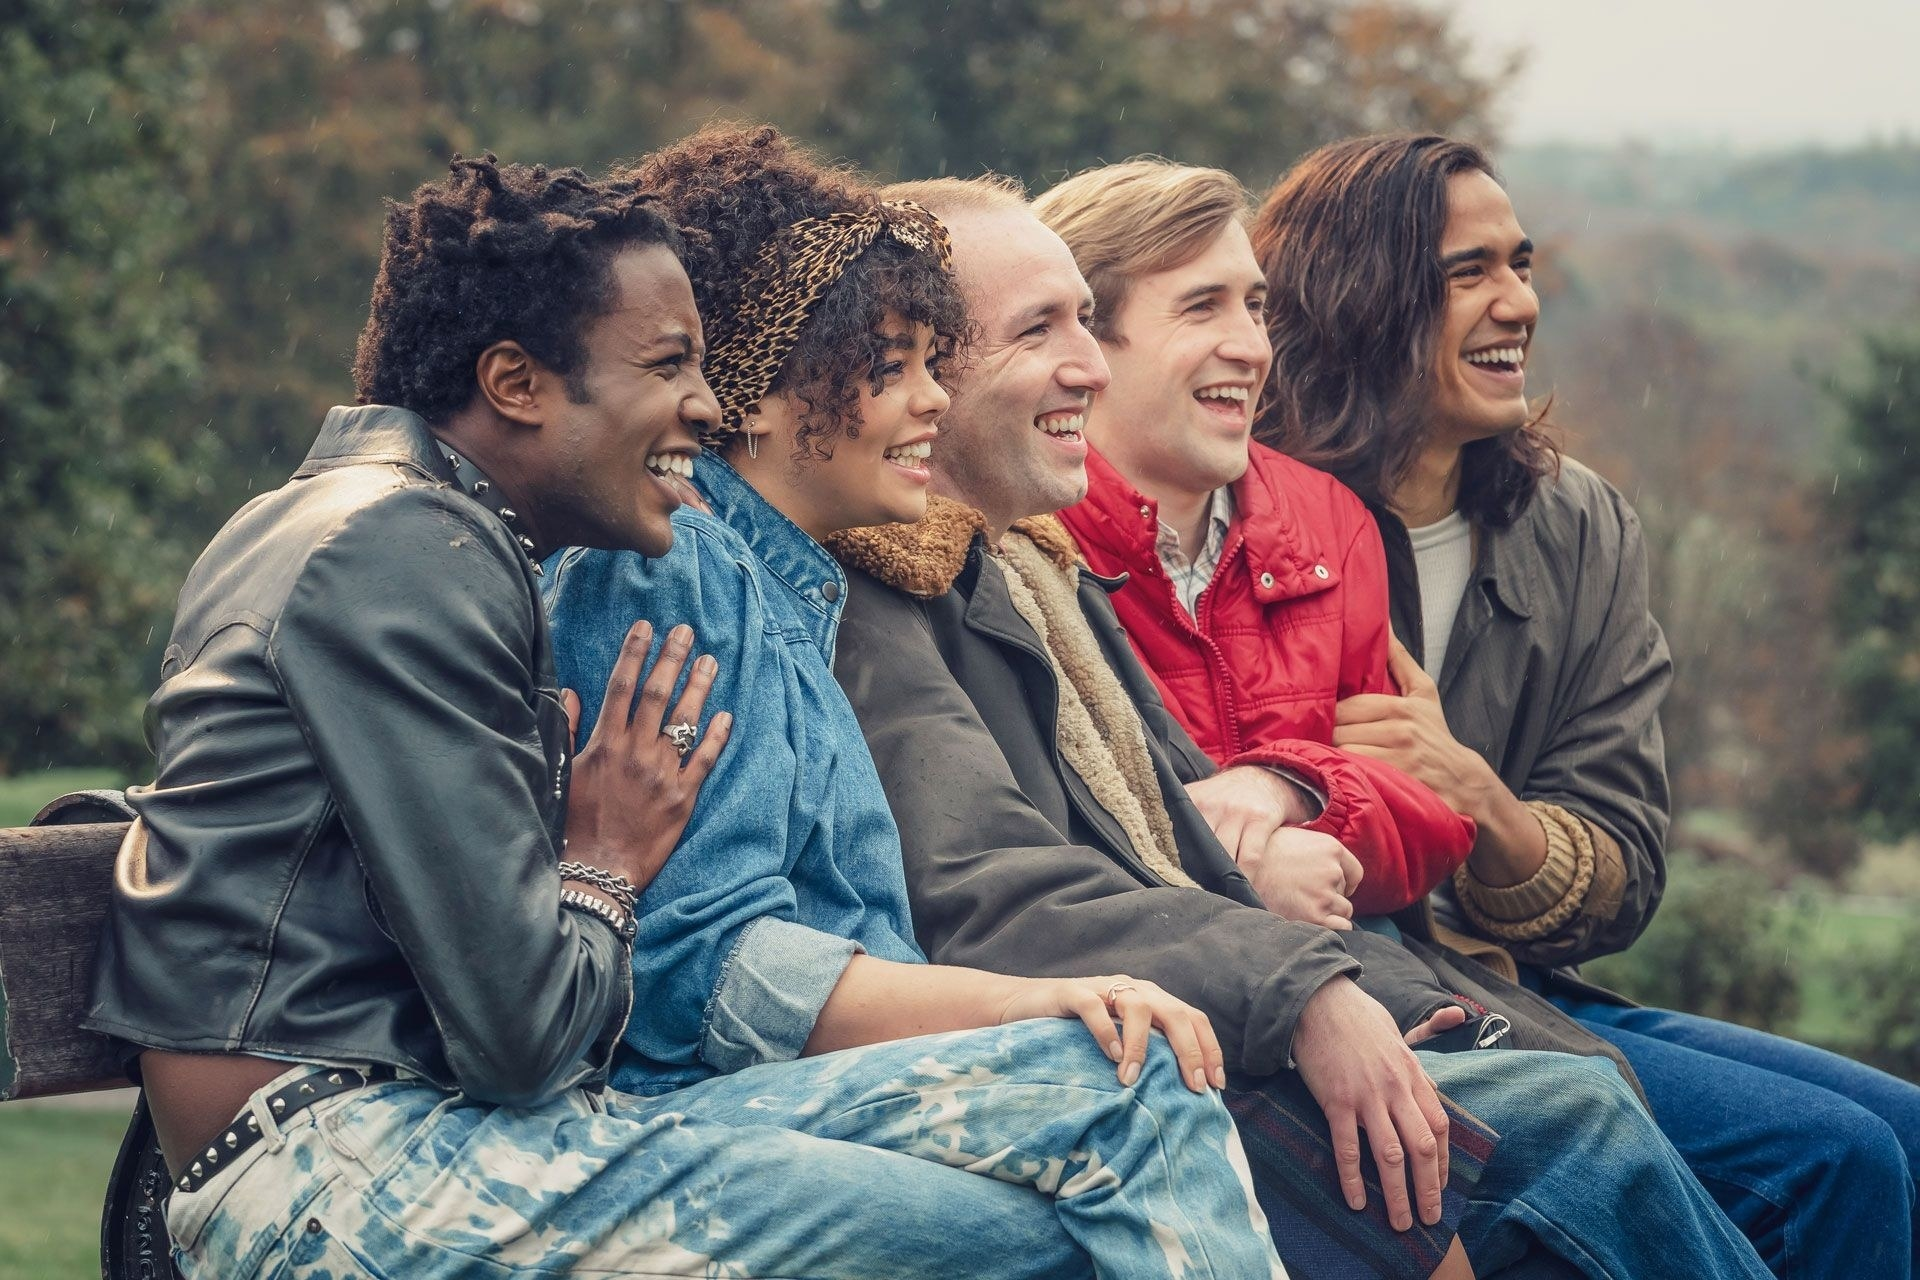 Five friends sit on a park bench and laugh